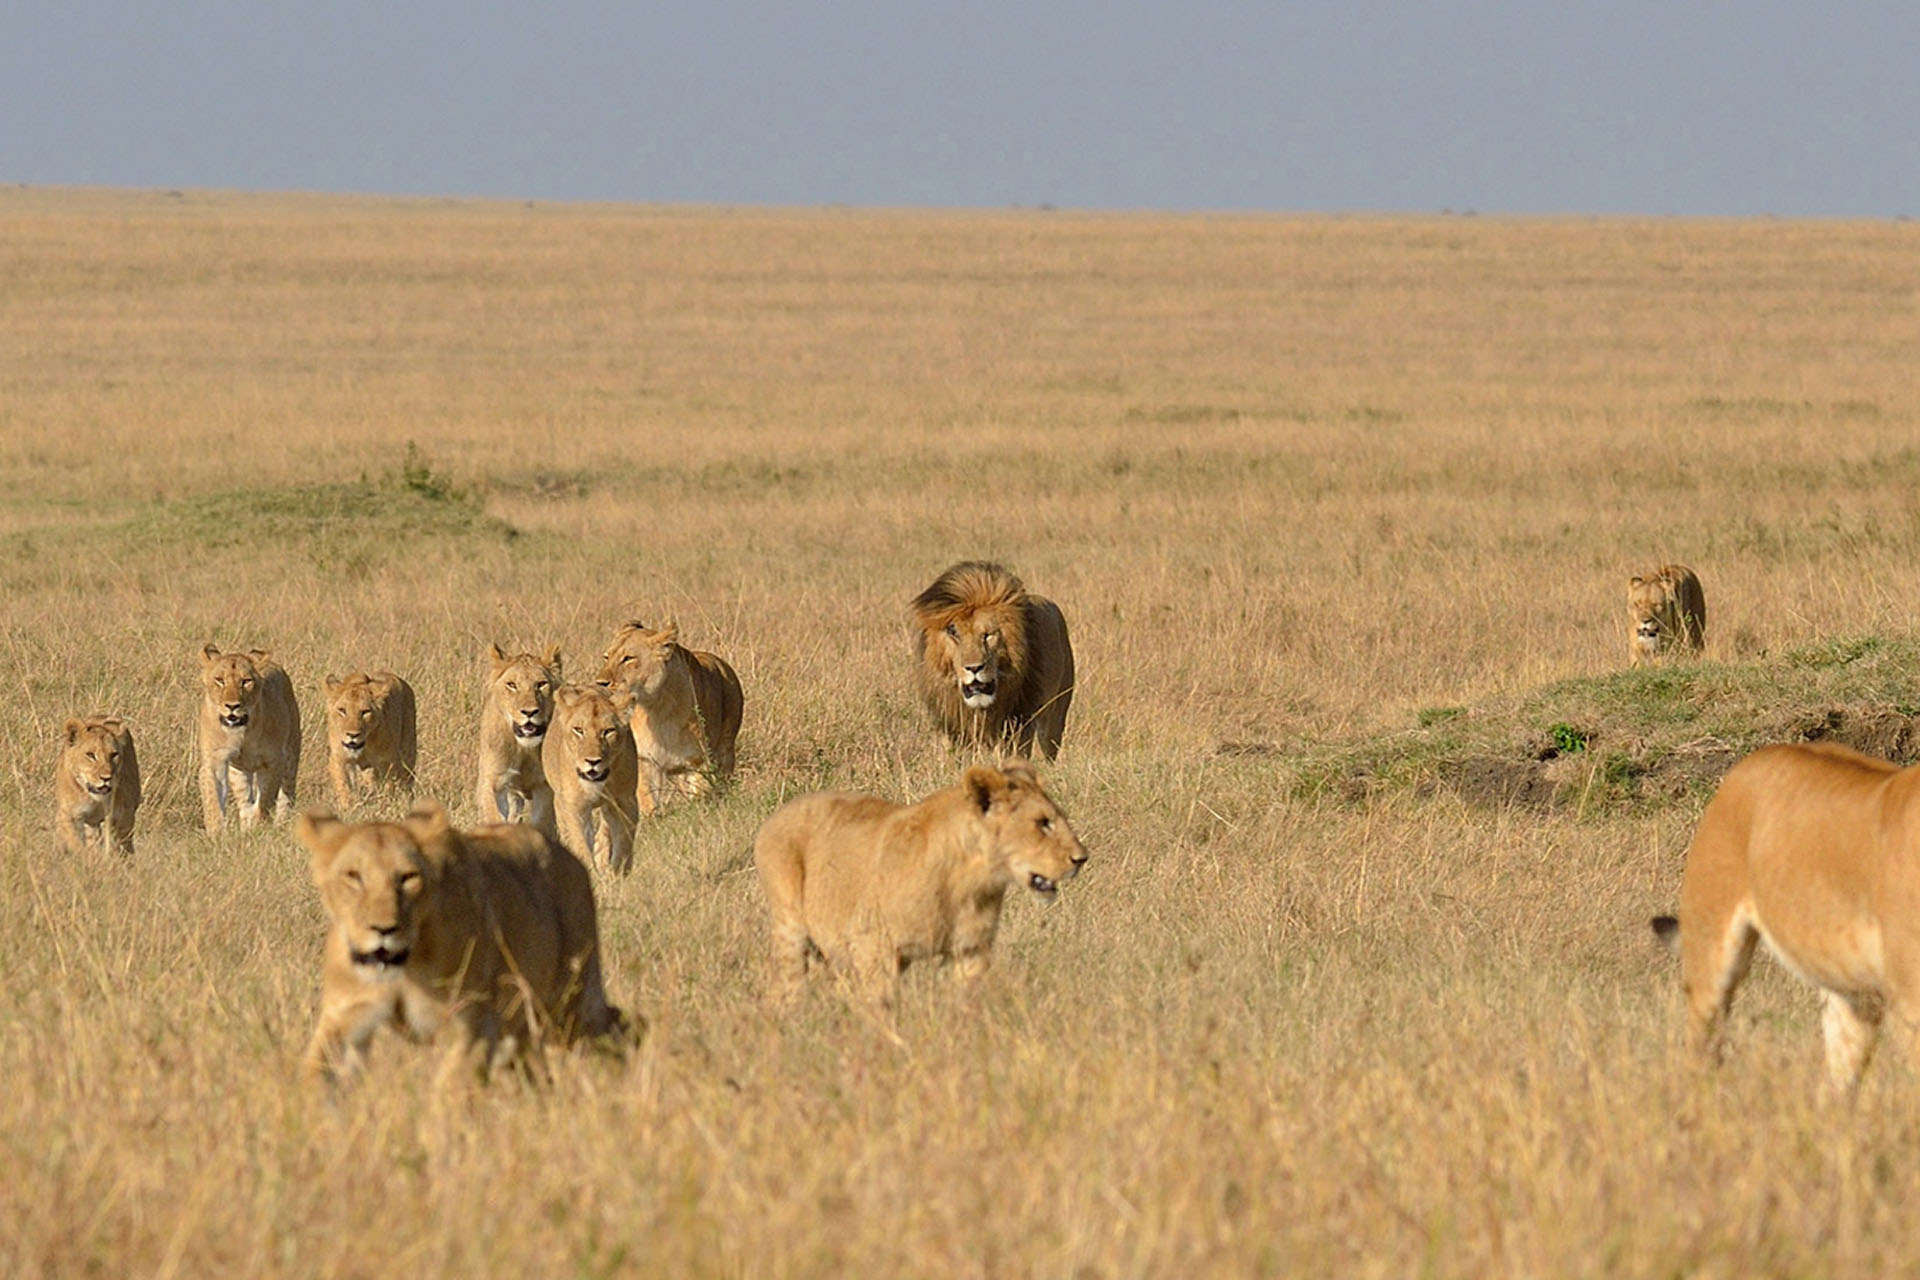 faqs-maasai-wanderings-safari-itineraries-signature-photo-safaris-africa-lions